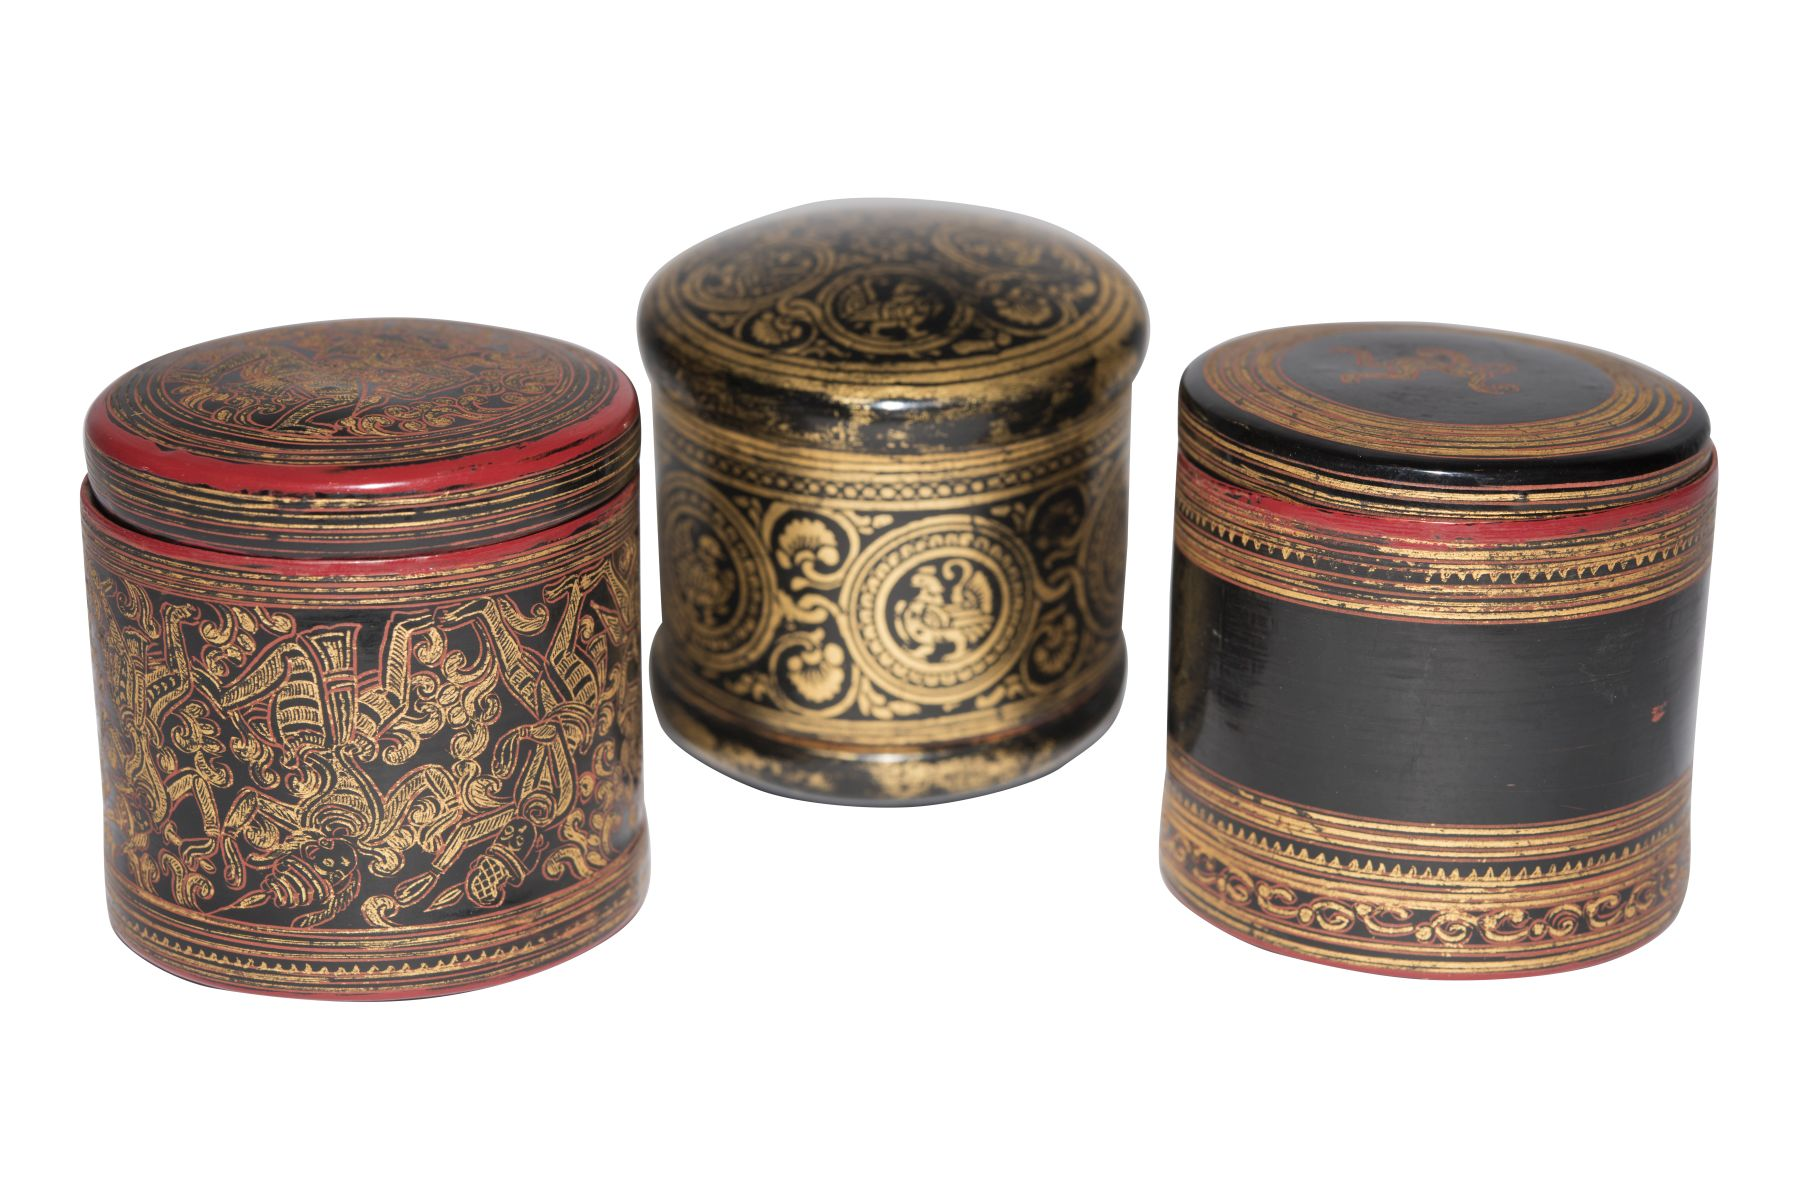 #79 Three small round wooden boxes made of Chinese lacquer | Drei kleine runde Holzschachteln aus Chinalack Image